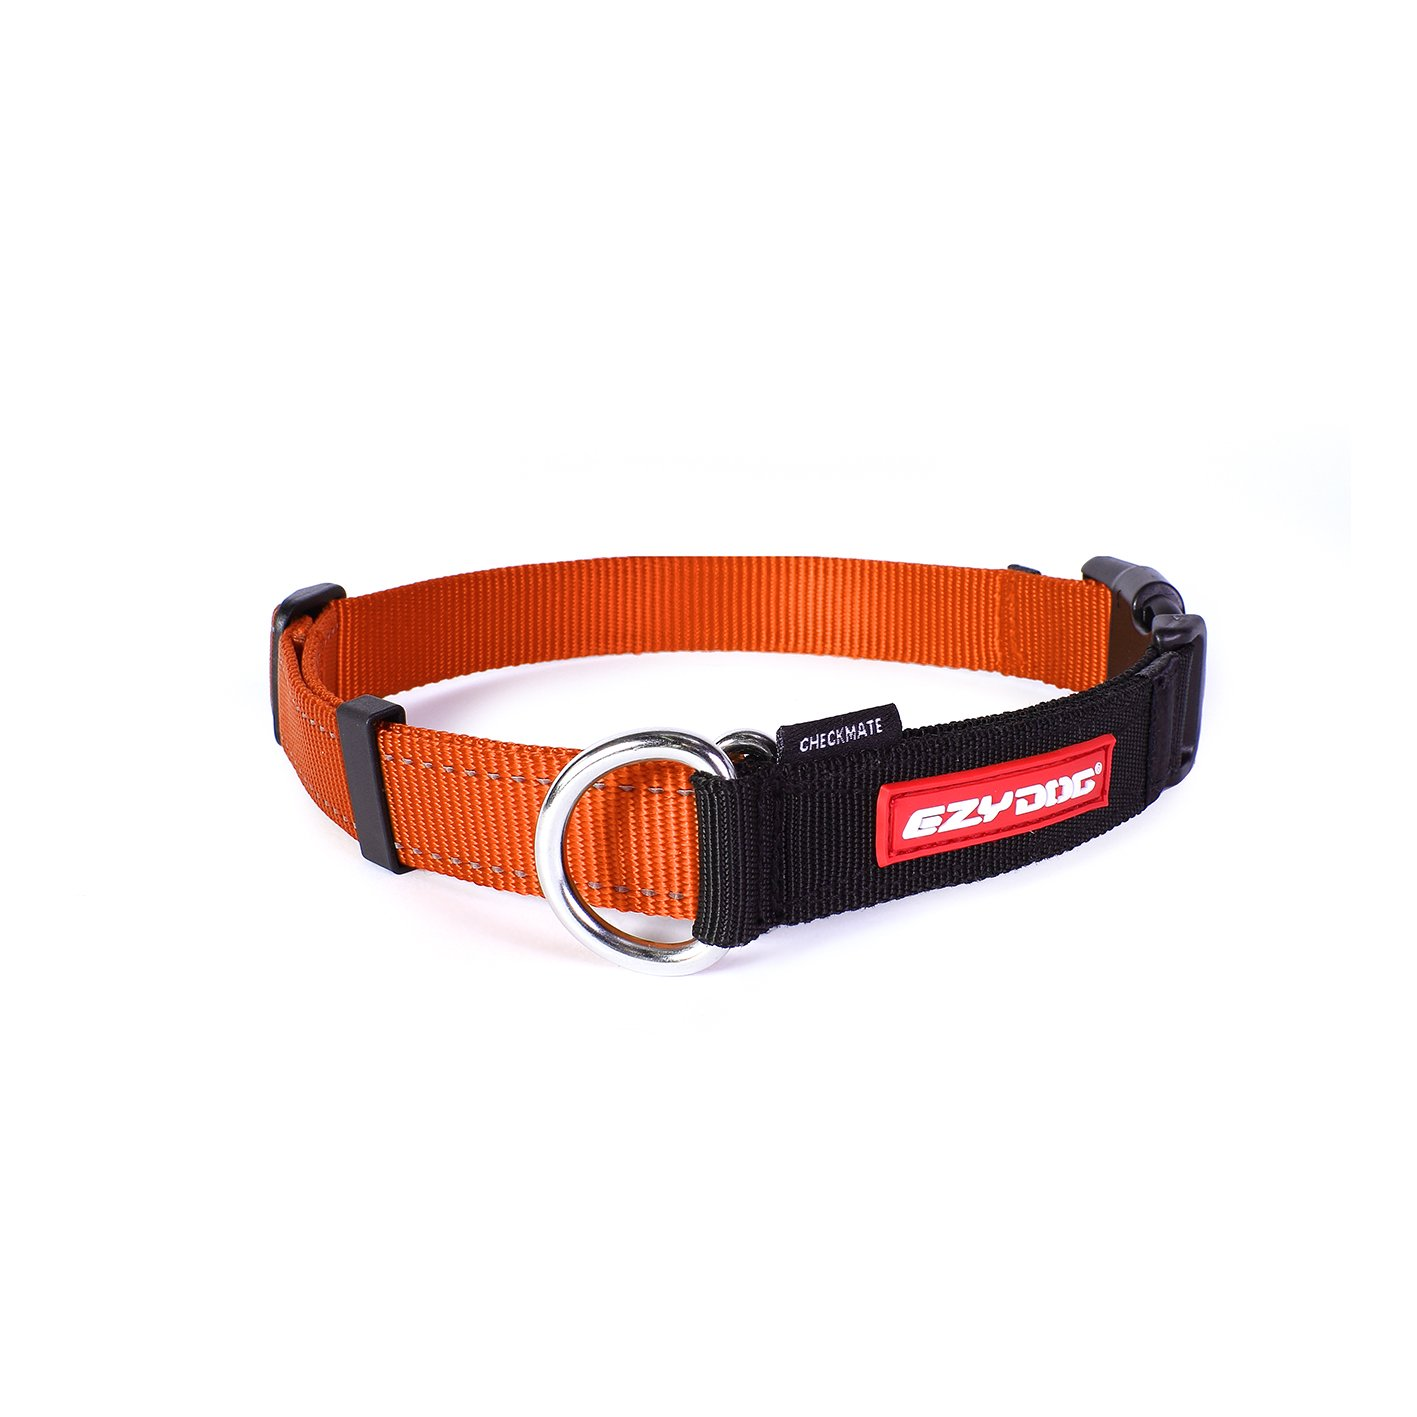 EzyDog Checkmate Martingale-Style Premium Nylon Safety Training and Correction Dog Collar - Quick-Clip Buckle and Reflective Stitching - Easy Control with no Choking Effect (Medium, Orange)